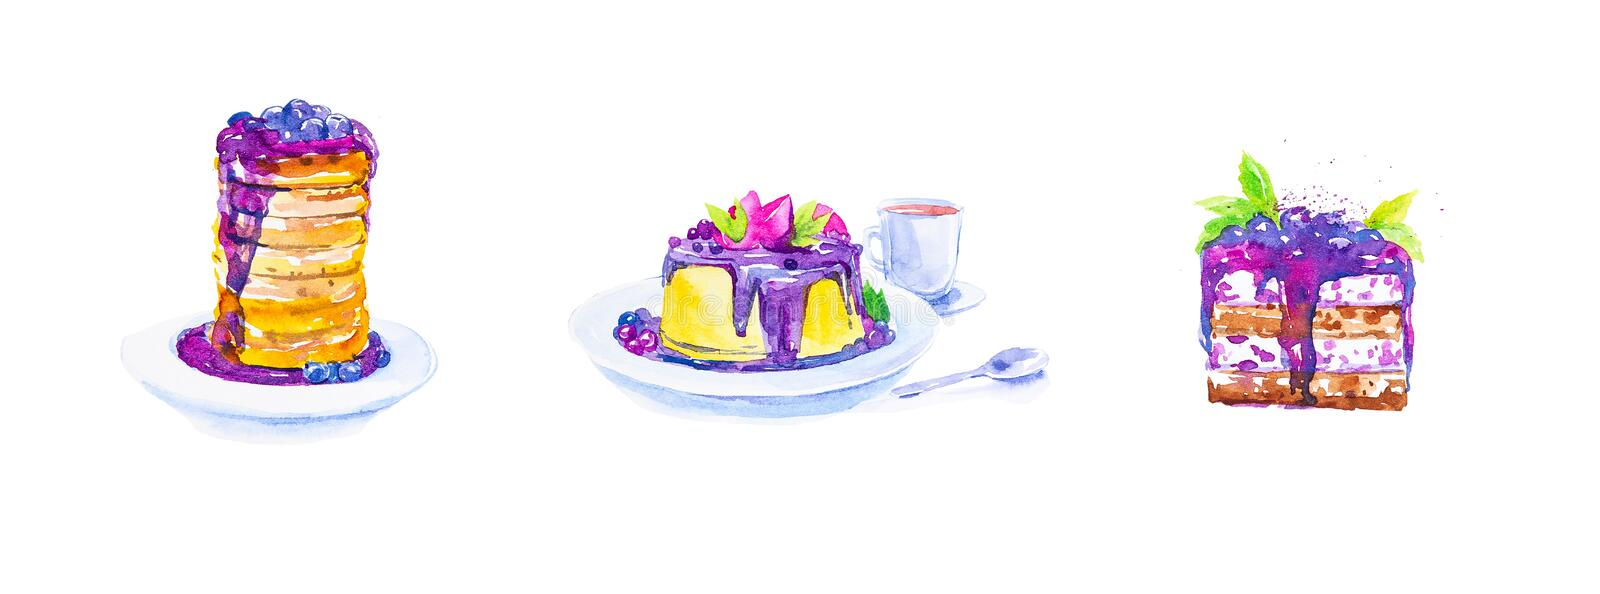 A set of desserts from cakes and a piece of cake with blueberries on plates, tea in a mug and a spoon. Watercolor illustration. Isolated on white background royalty free illustration